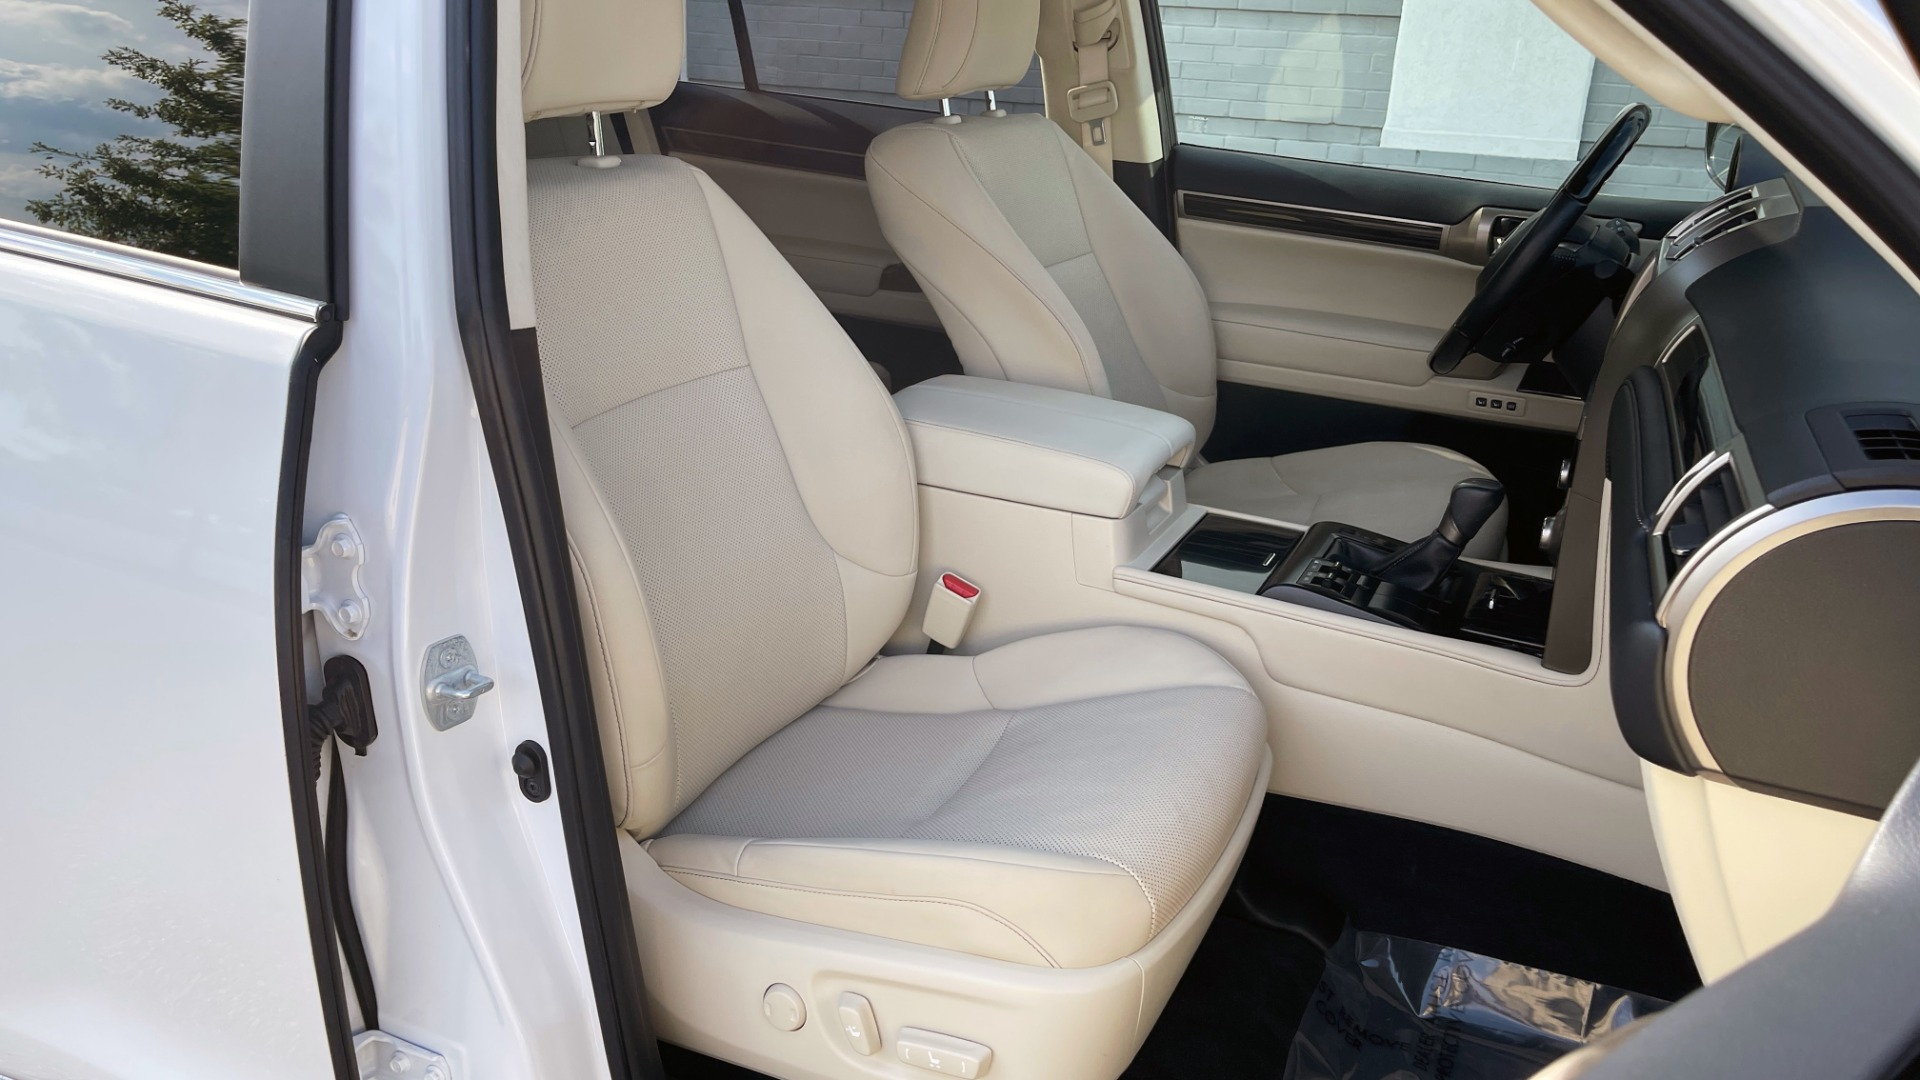 Used 2020 Lexus GX 460 PREMIUM / AWD / NAV / SUNROOF / 3-ROW / REARVIEW for sale $54,495 at Formula Imports in Charlotte NC 28227 65